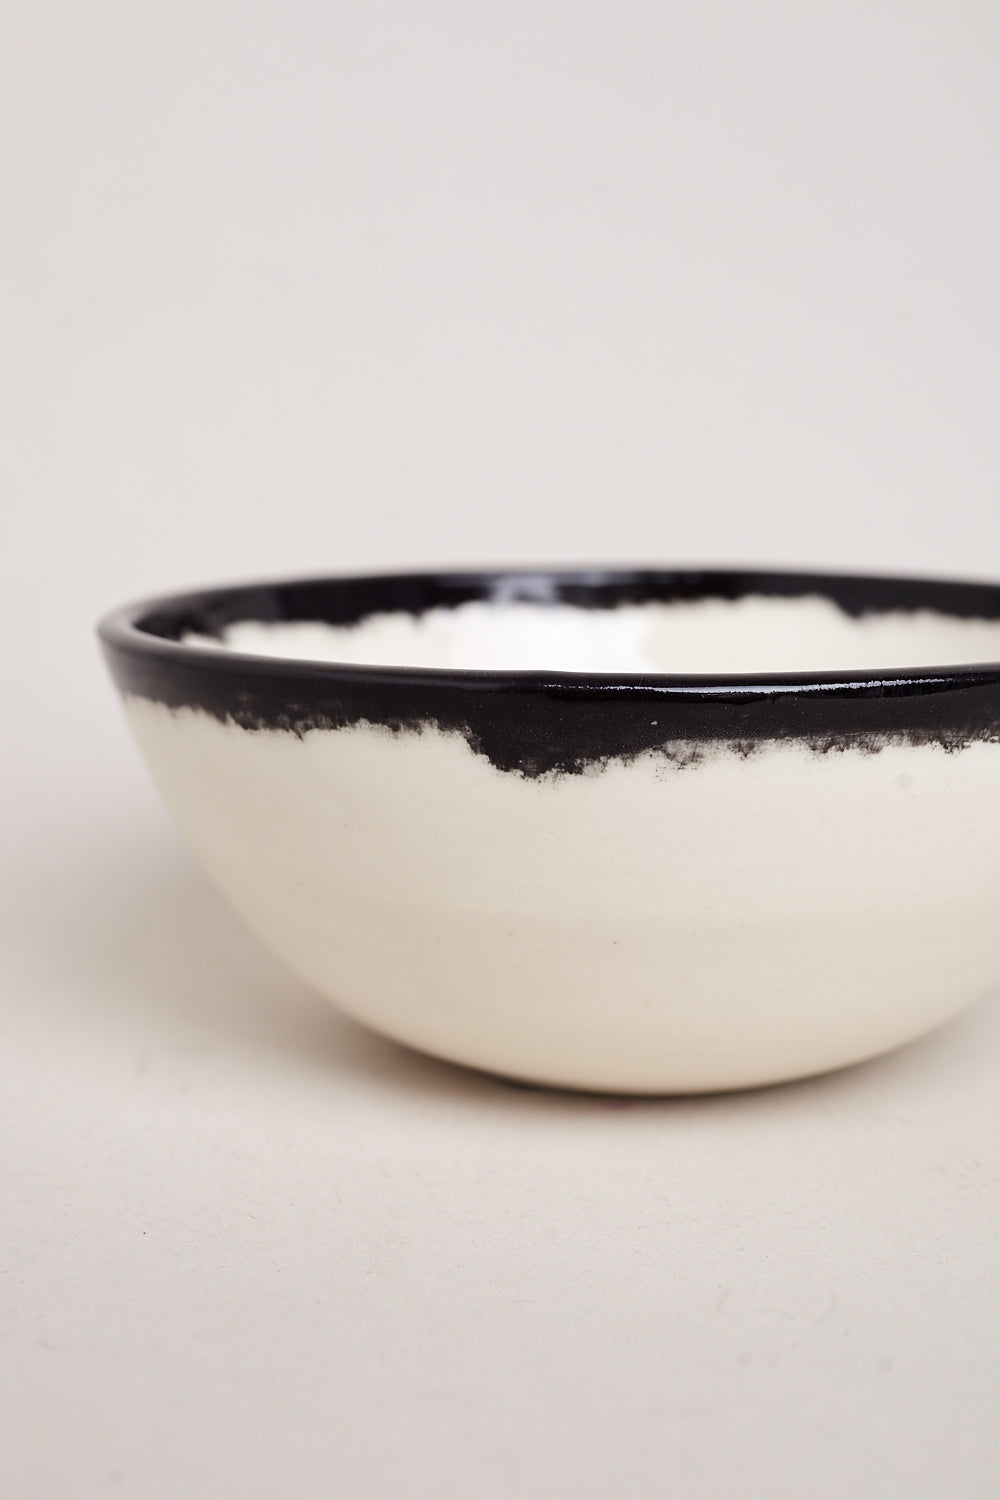 BTW Ceramics Blur Bowl - Vert & Vogue